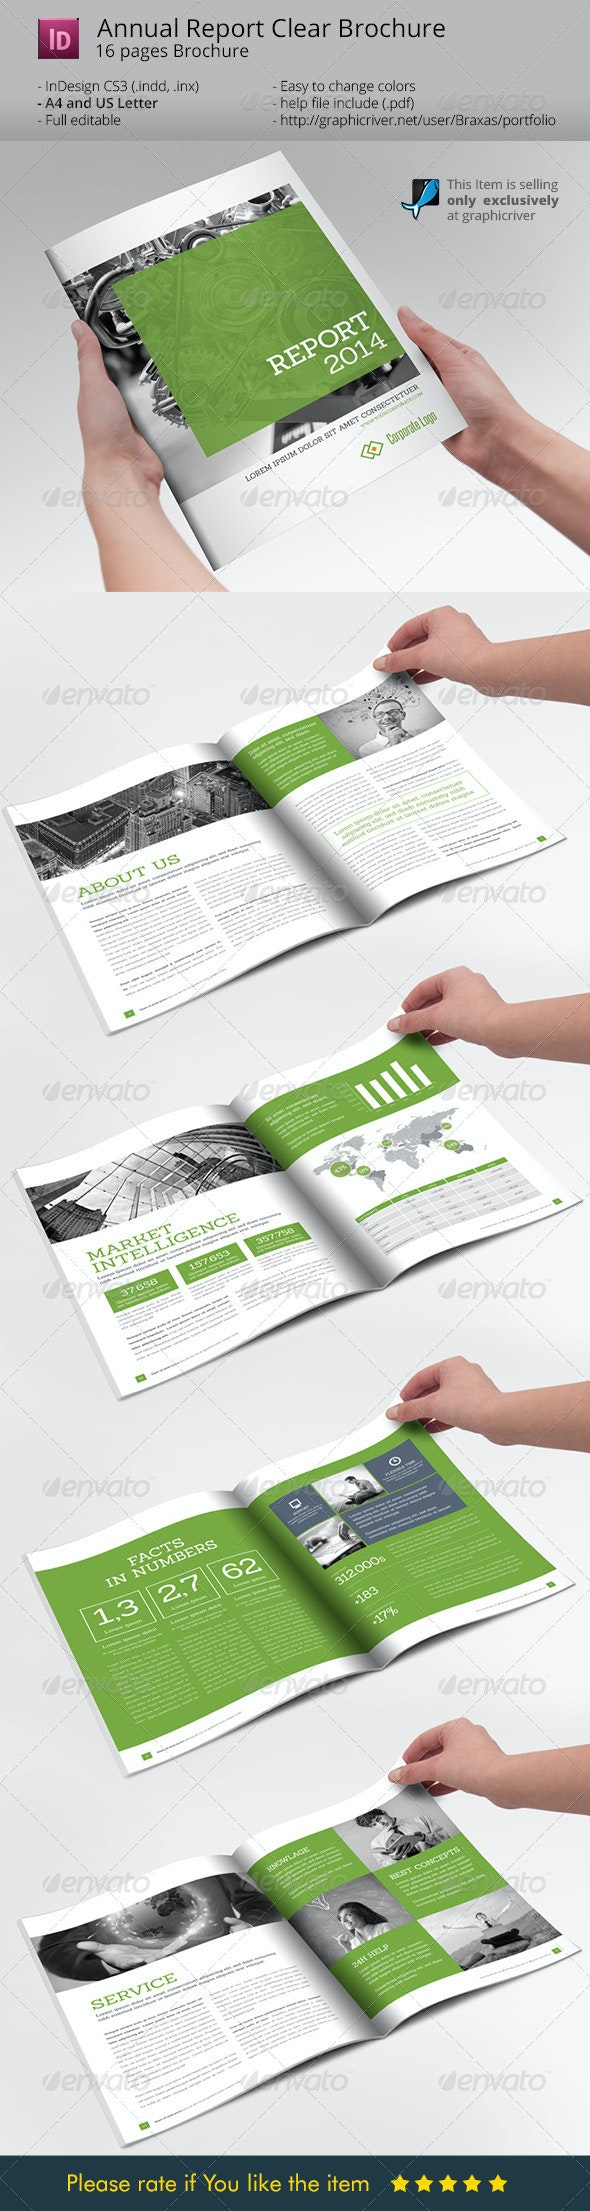 Annual Report Clean Indesign Brochure - Informational Brochures